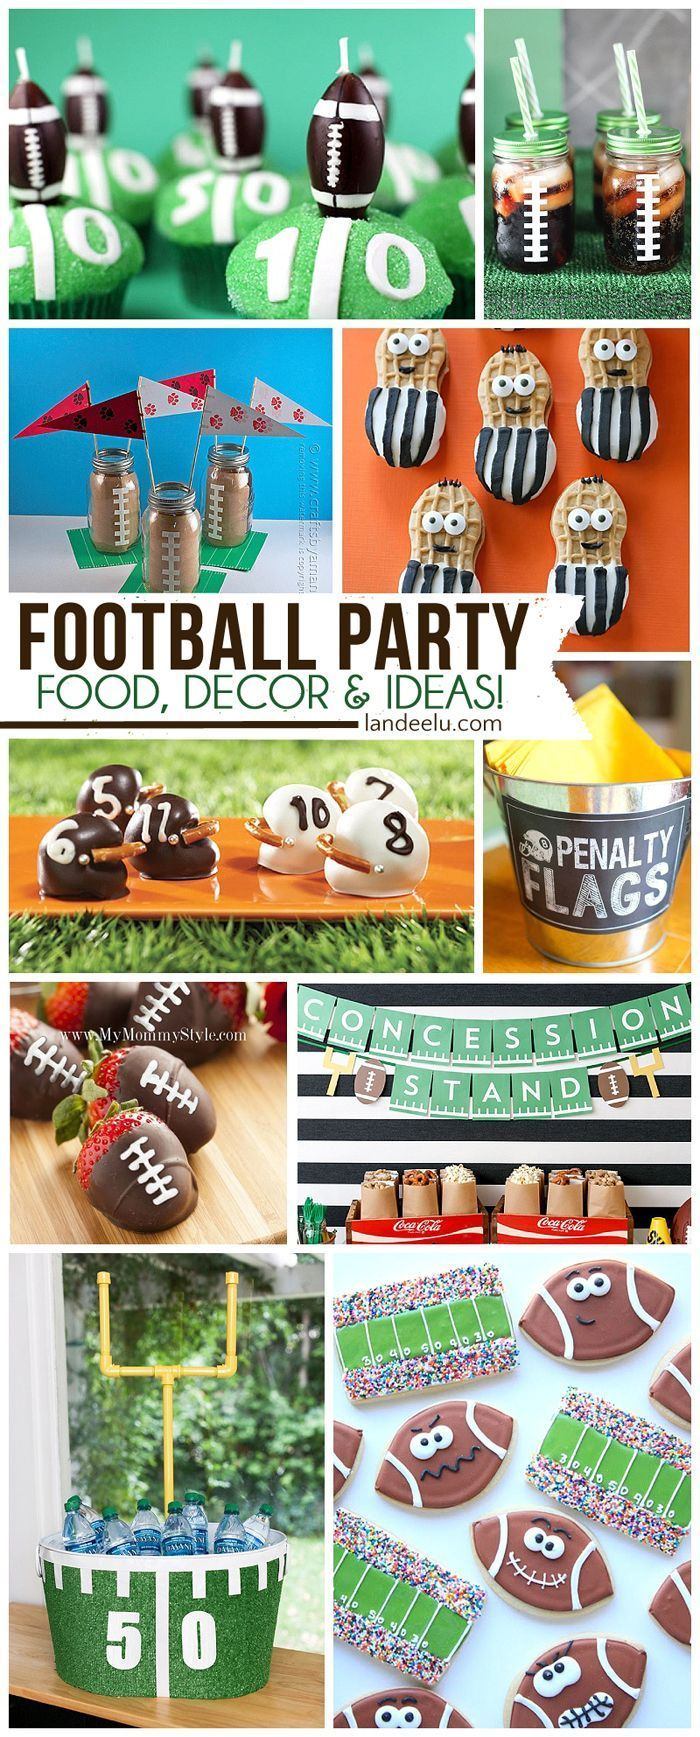 DIY Football Party Ideas Perfect for Team Parties, Birthdays and SUPER BOWL! #footballpartyfood